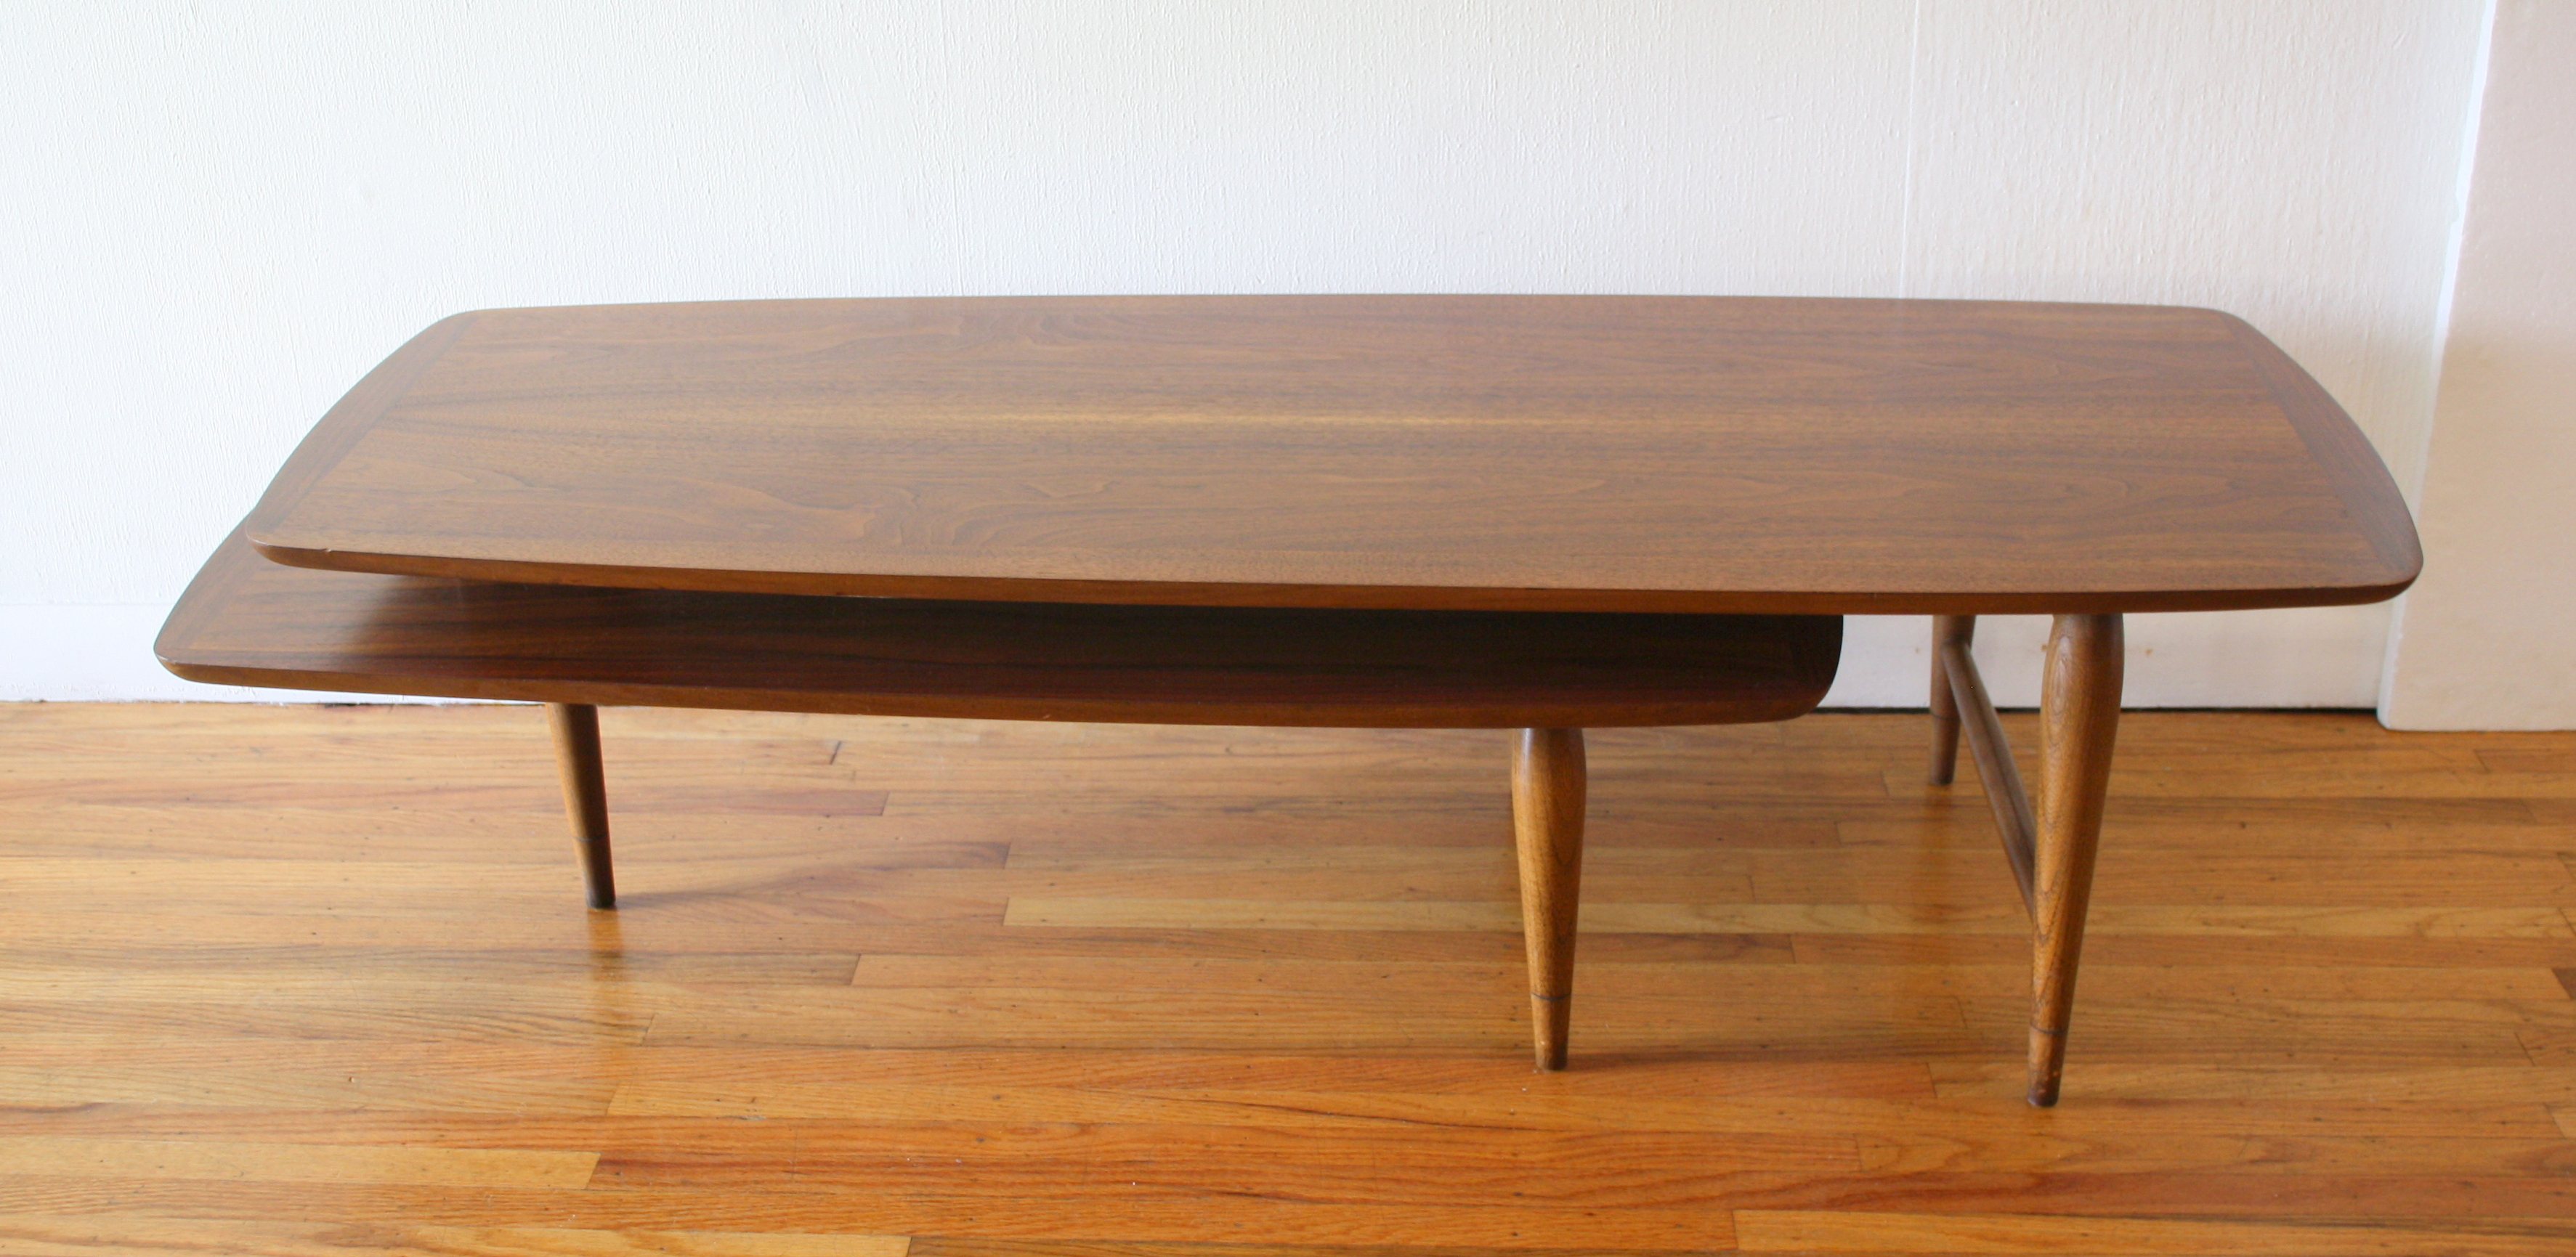 Mcm boomerang coffee table 4